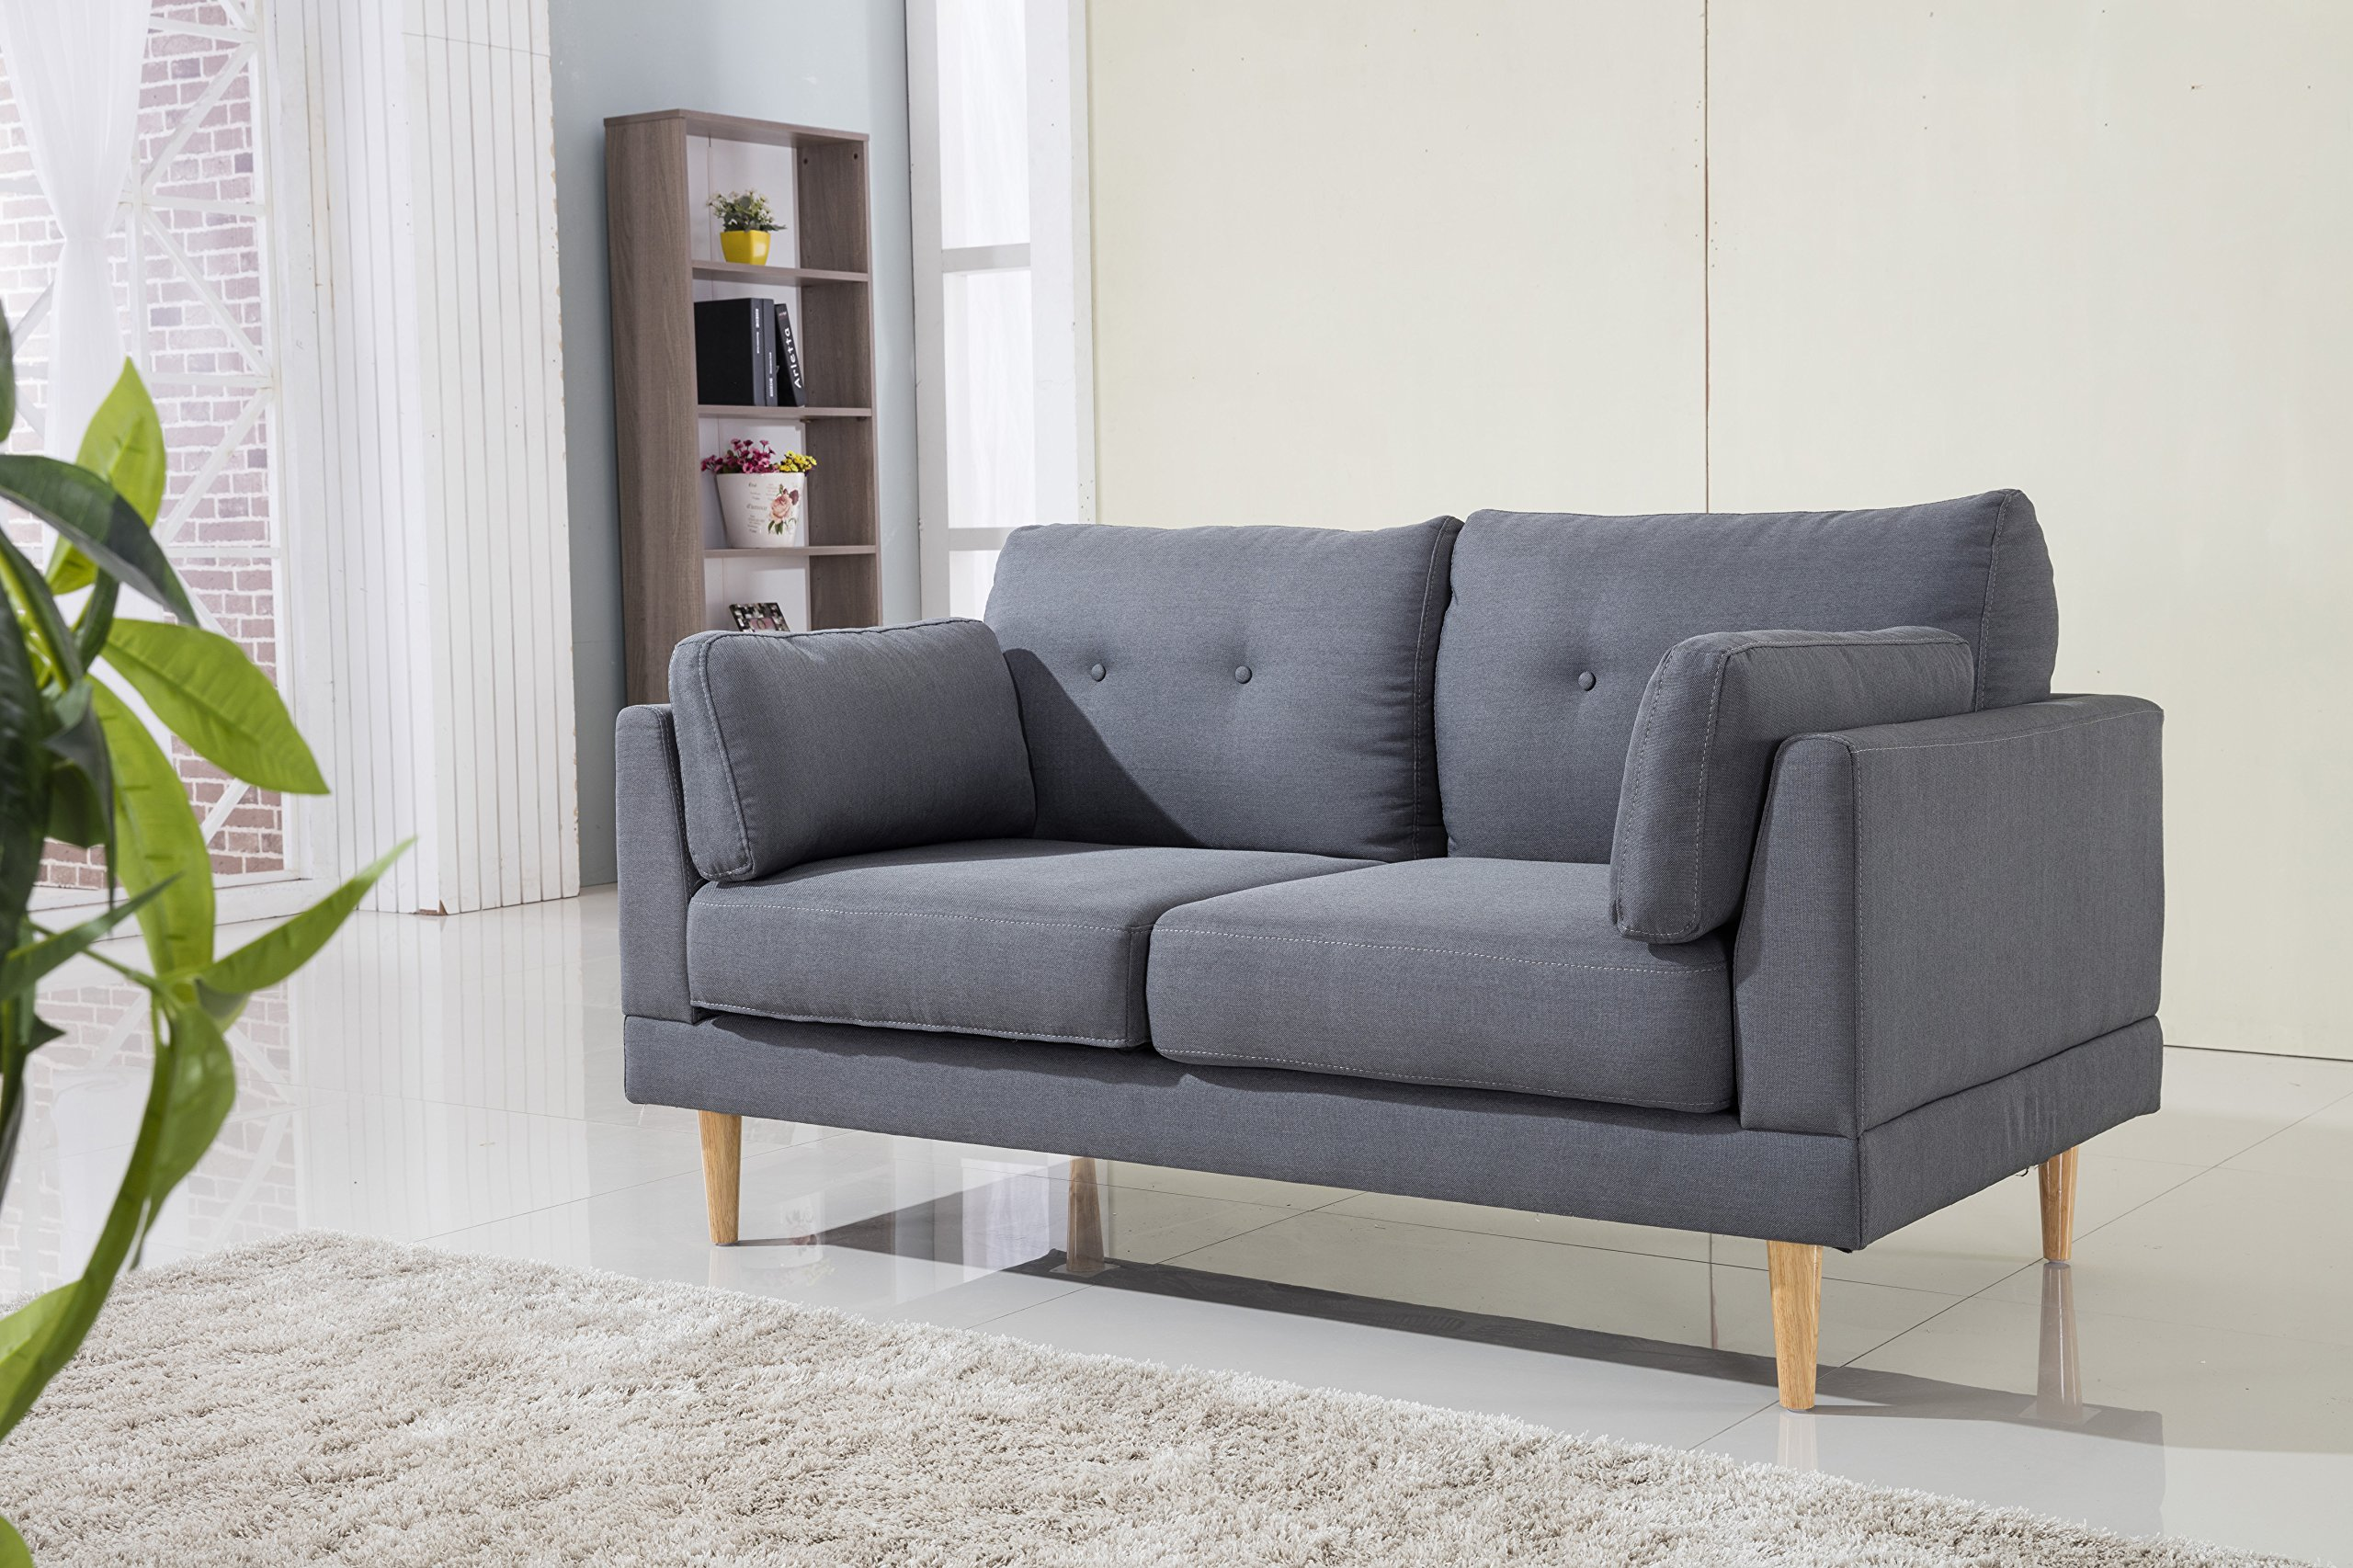 Mid Century Modern Ultra Plush Linen Fabric Sofa, Color Dark Grey and Light Grey (Dark Grey) - Mid century modern loveseat sofa with tufted cushion details Features linen fabric upholstery with 5 natural finish wooden legs 2 decorative pillows are included - cushion covers can be washed - sofas-couches, living-room-furniture, living-room - 91YHBlFE1XL -